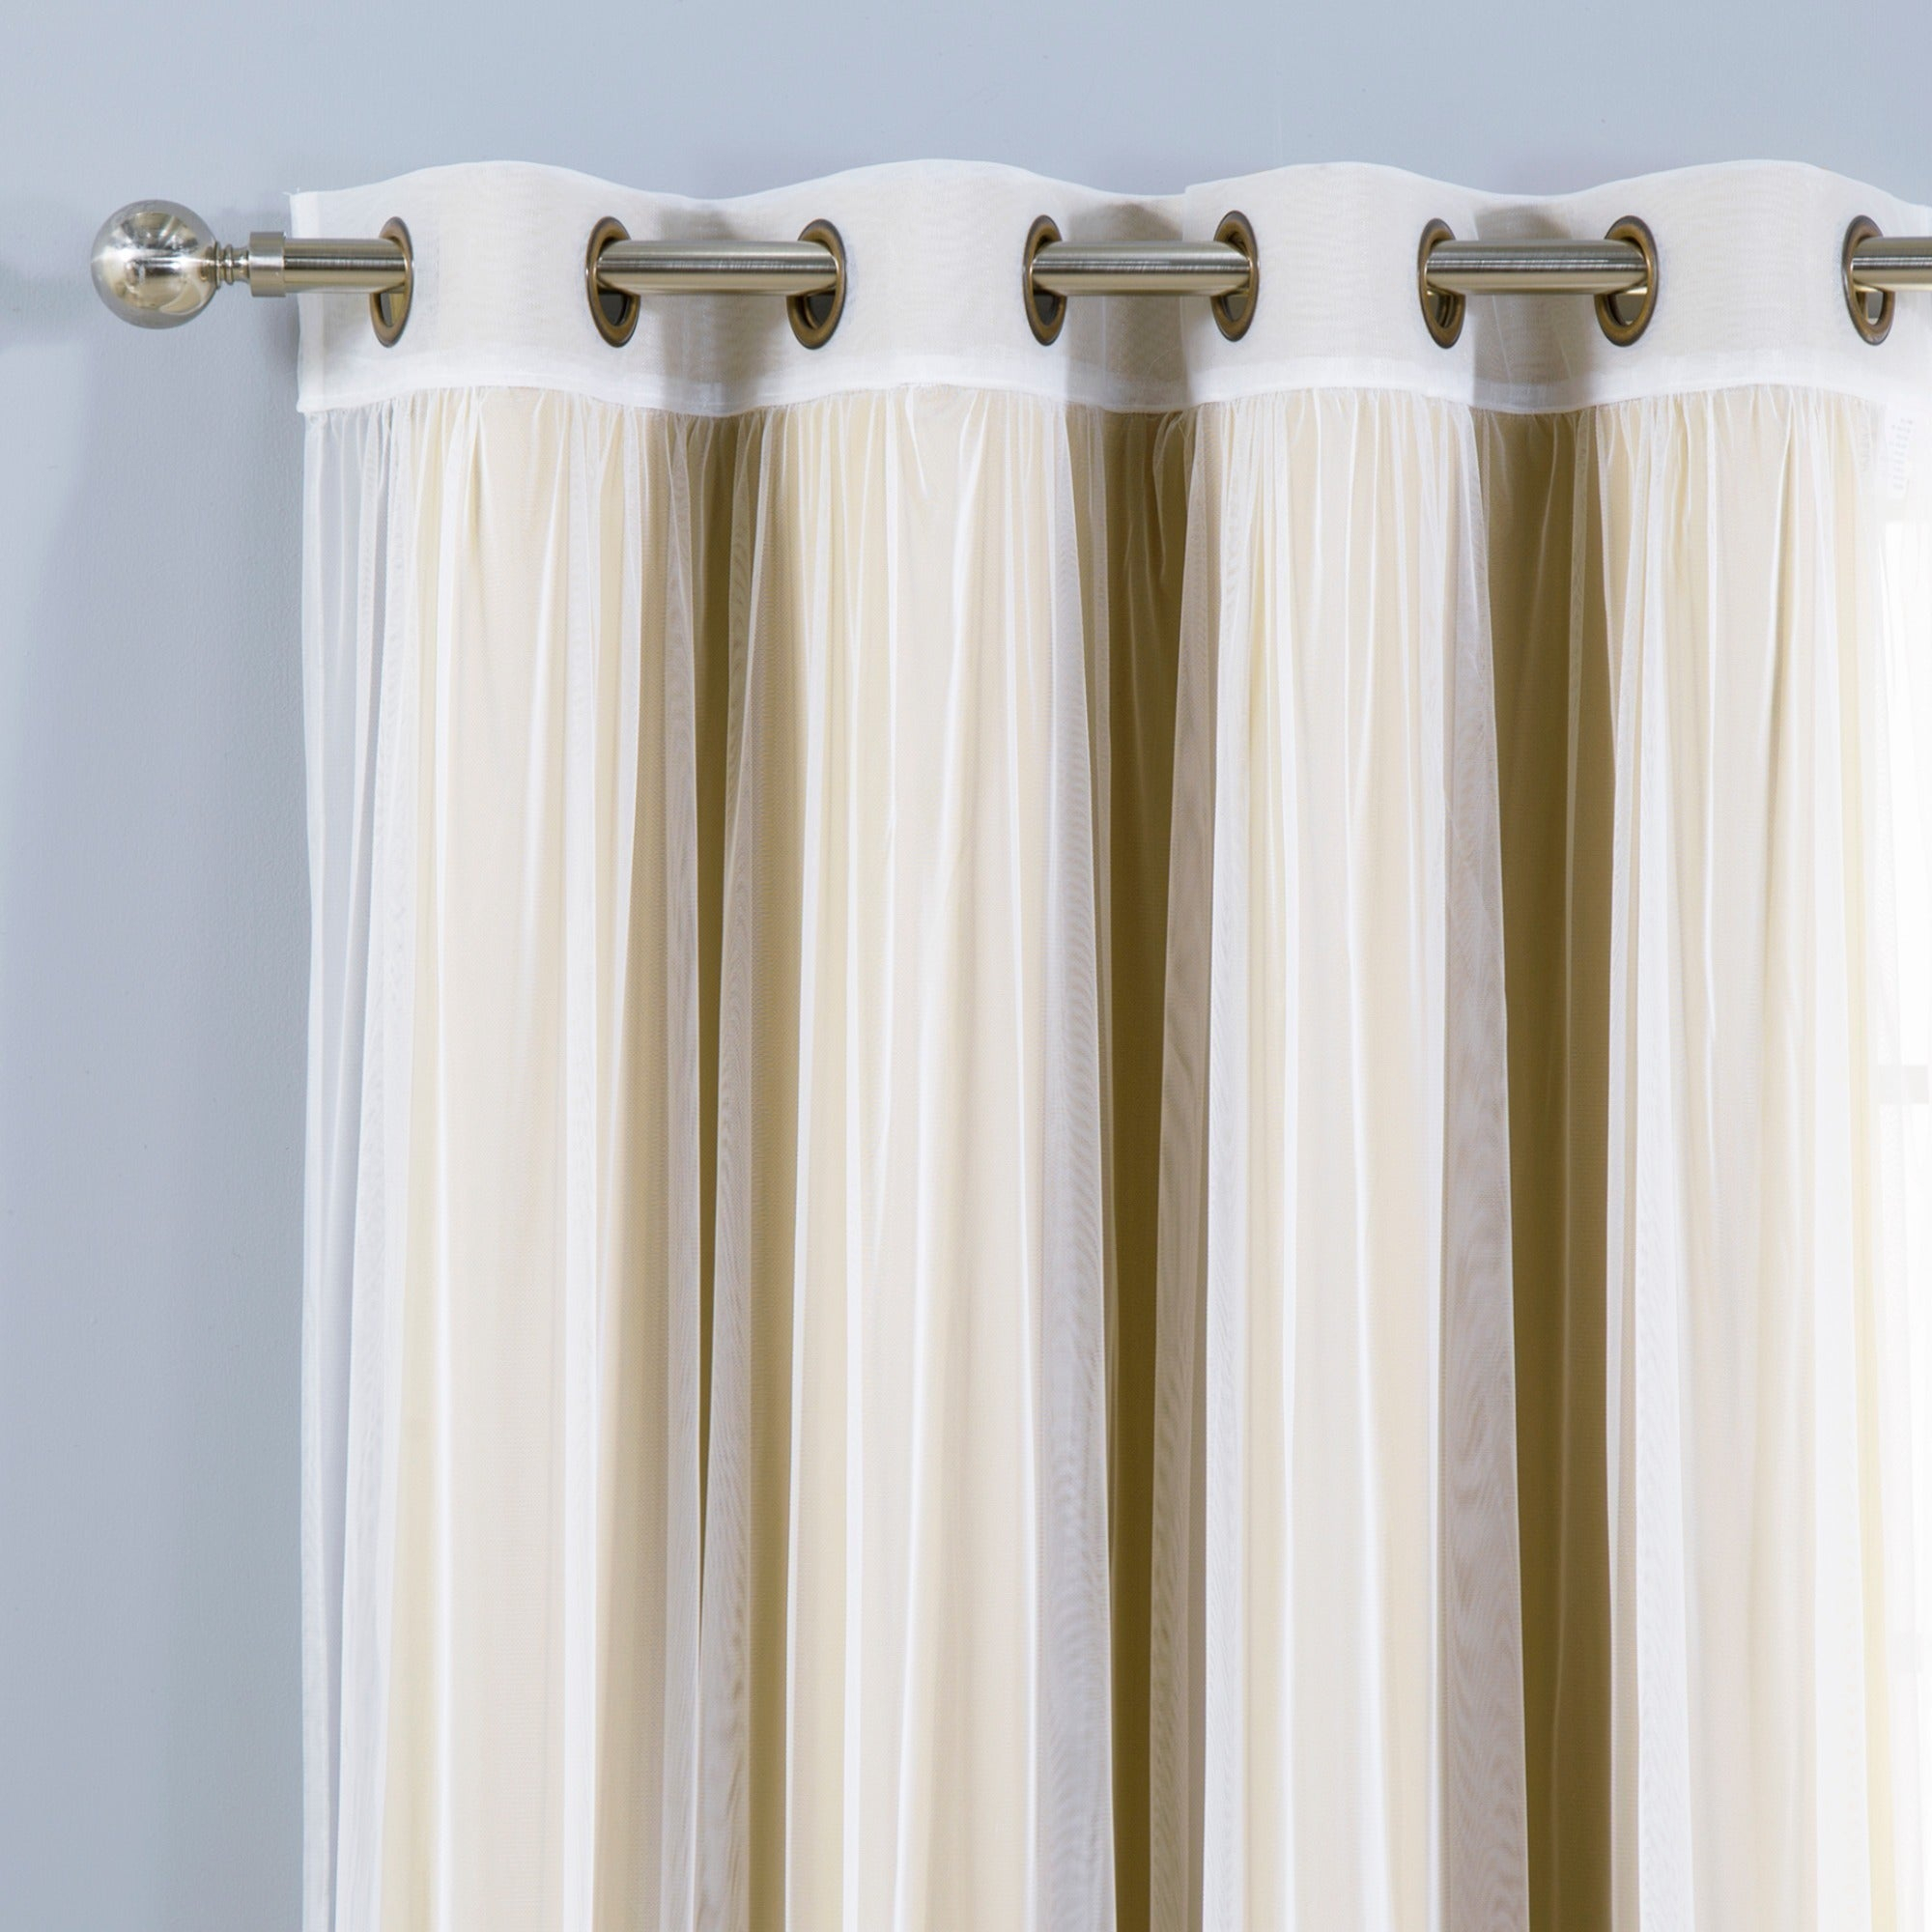 Aurora Home Mix & Match Blackout Tulle Lace Bronze Grommet 4 Piece Curtain  Panel Set with Mix & Match Blackout Tulle Lace Bronze Grommet Curtain Panel Sets (Image 4 of 20)